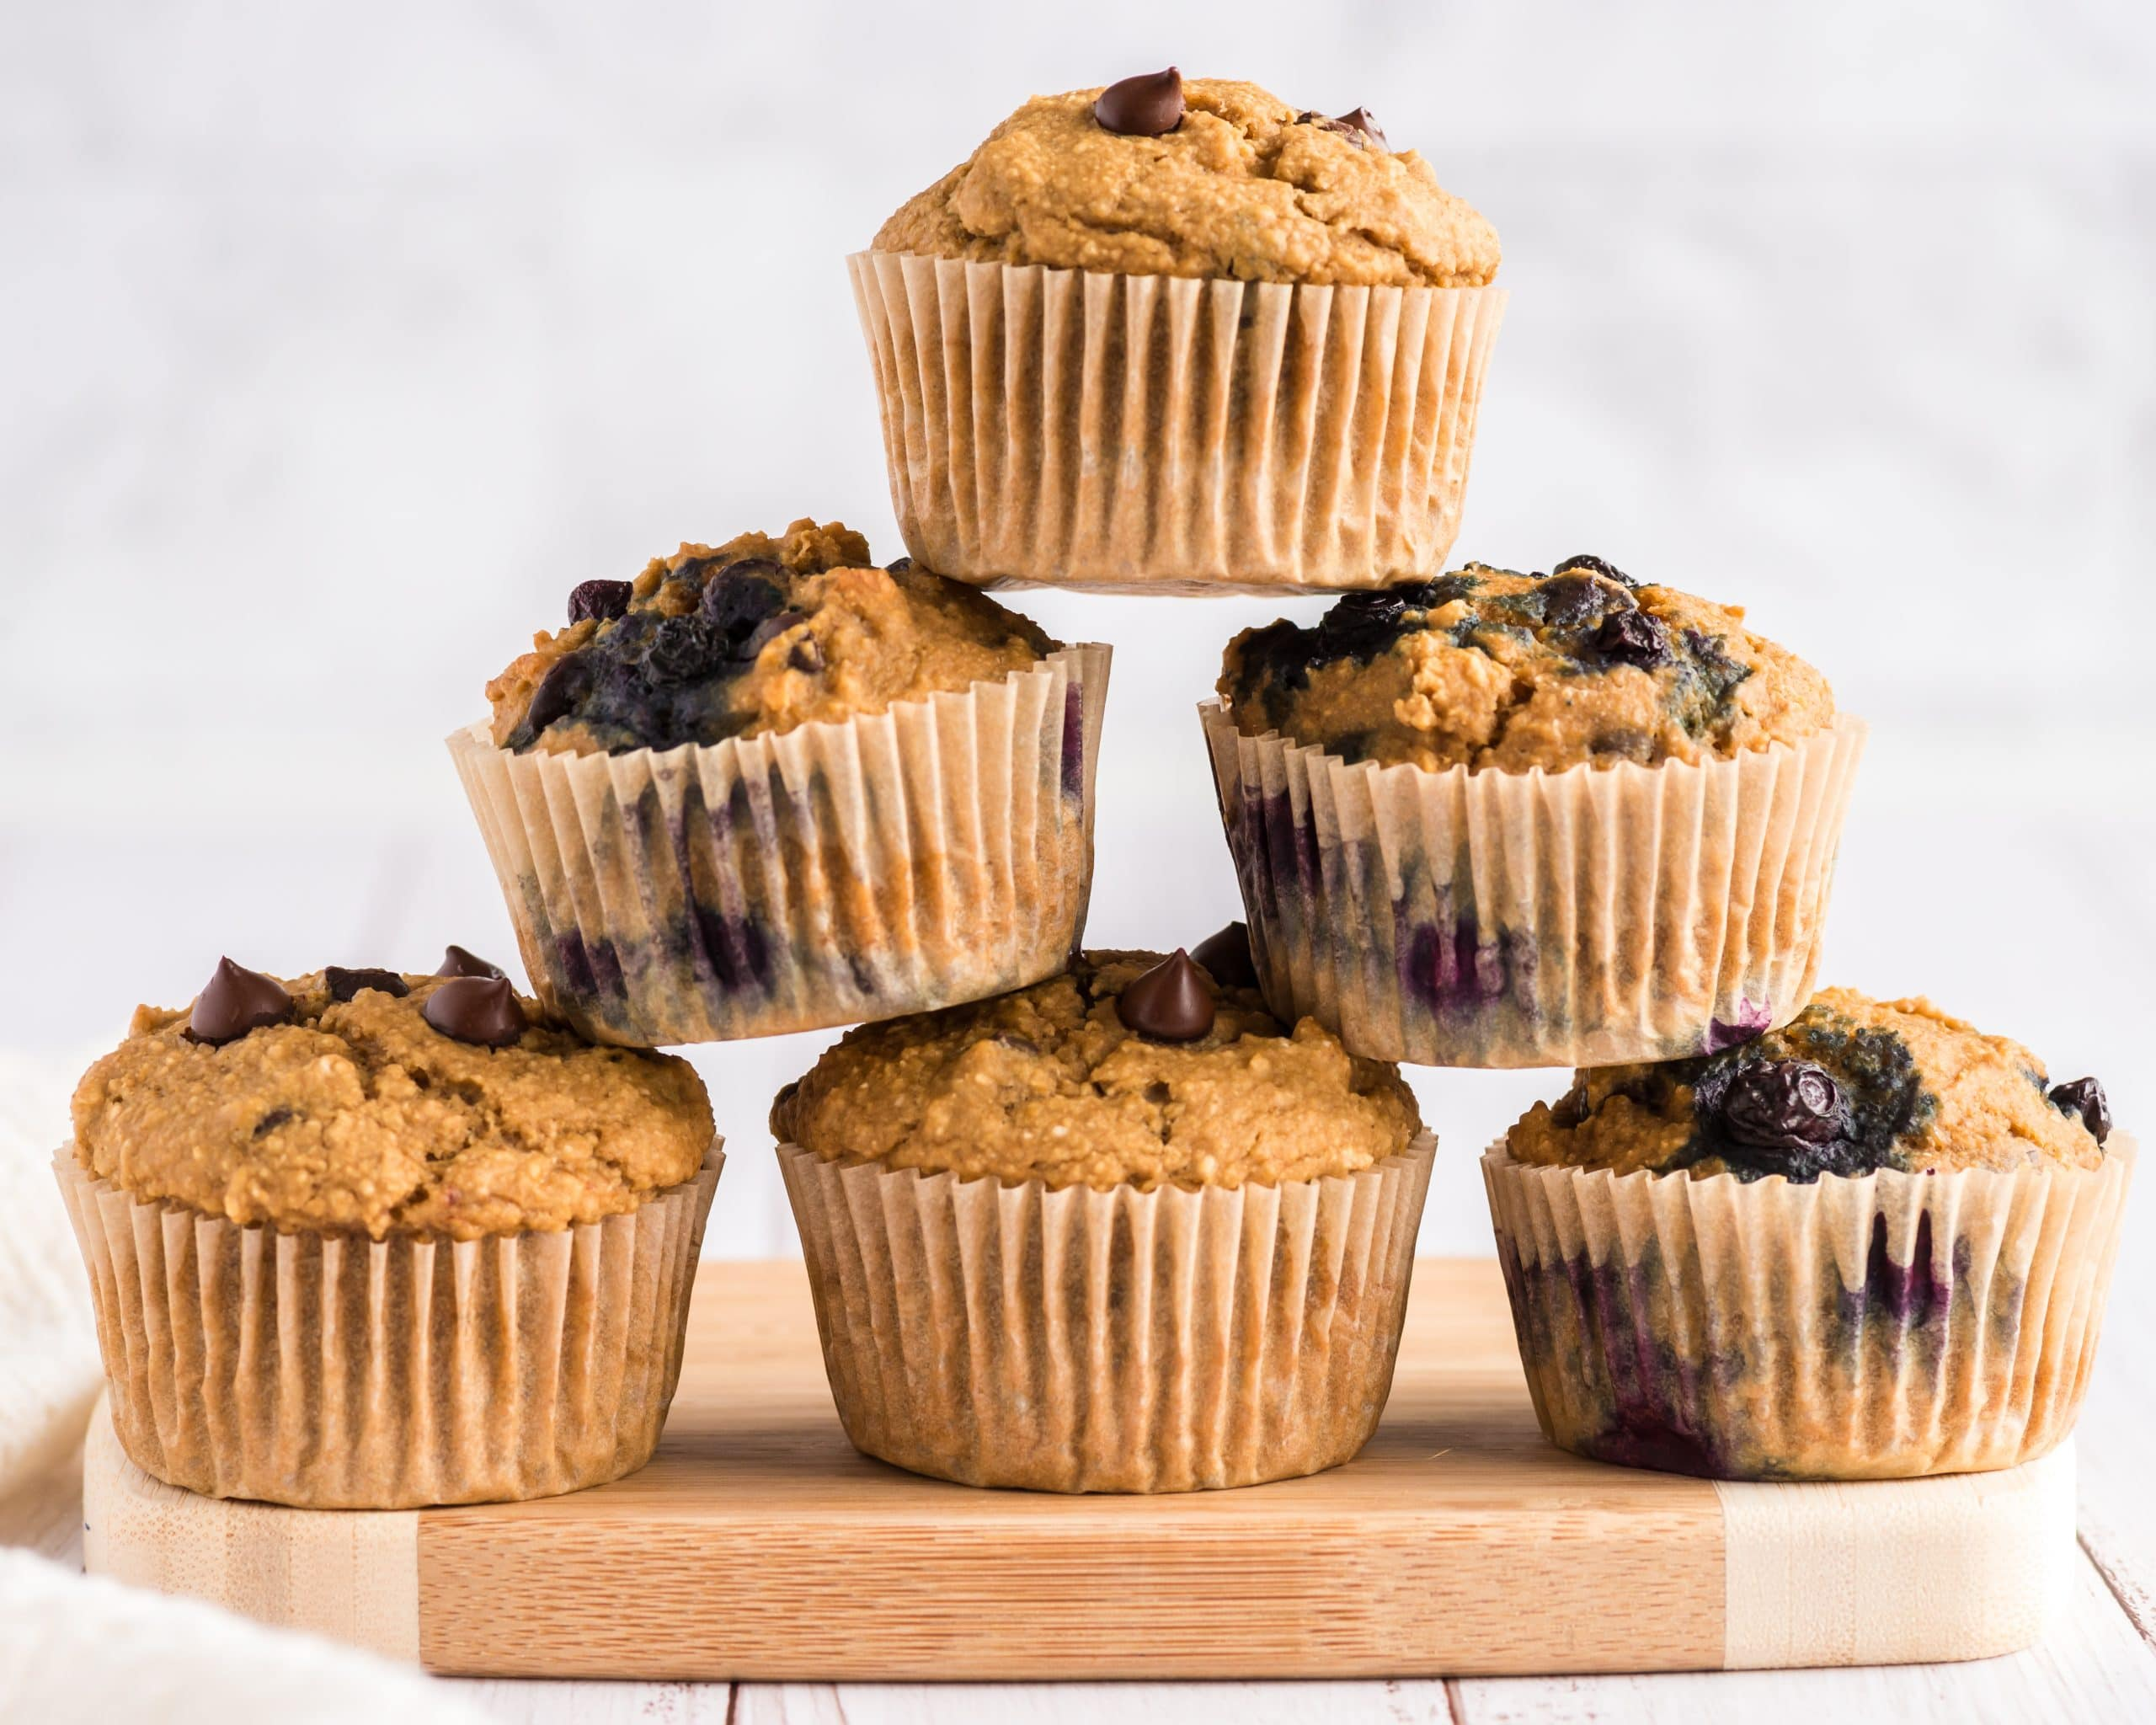 vegan chocolate chip muffins stacked in a pyramid shape